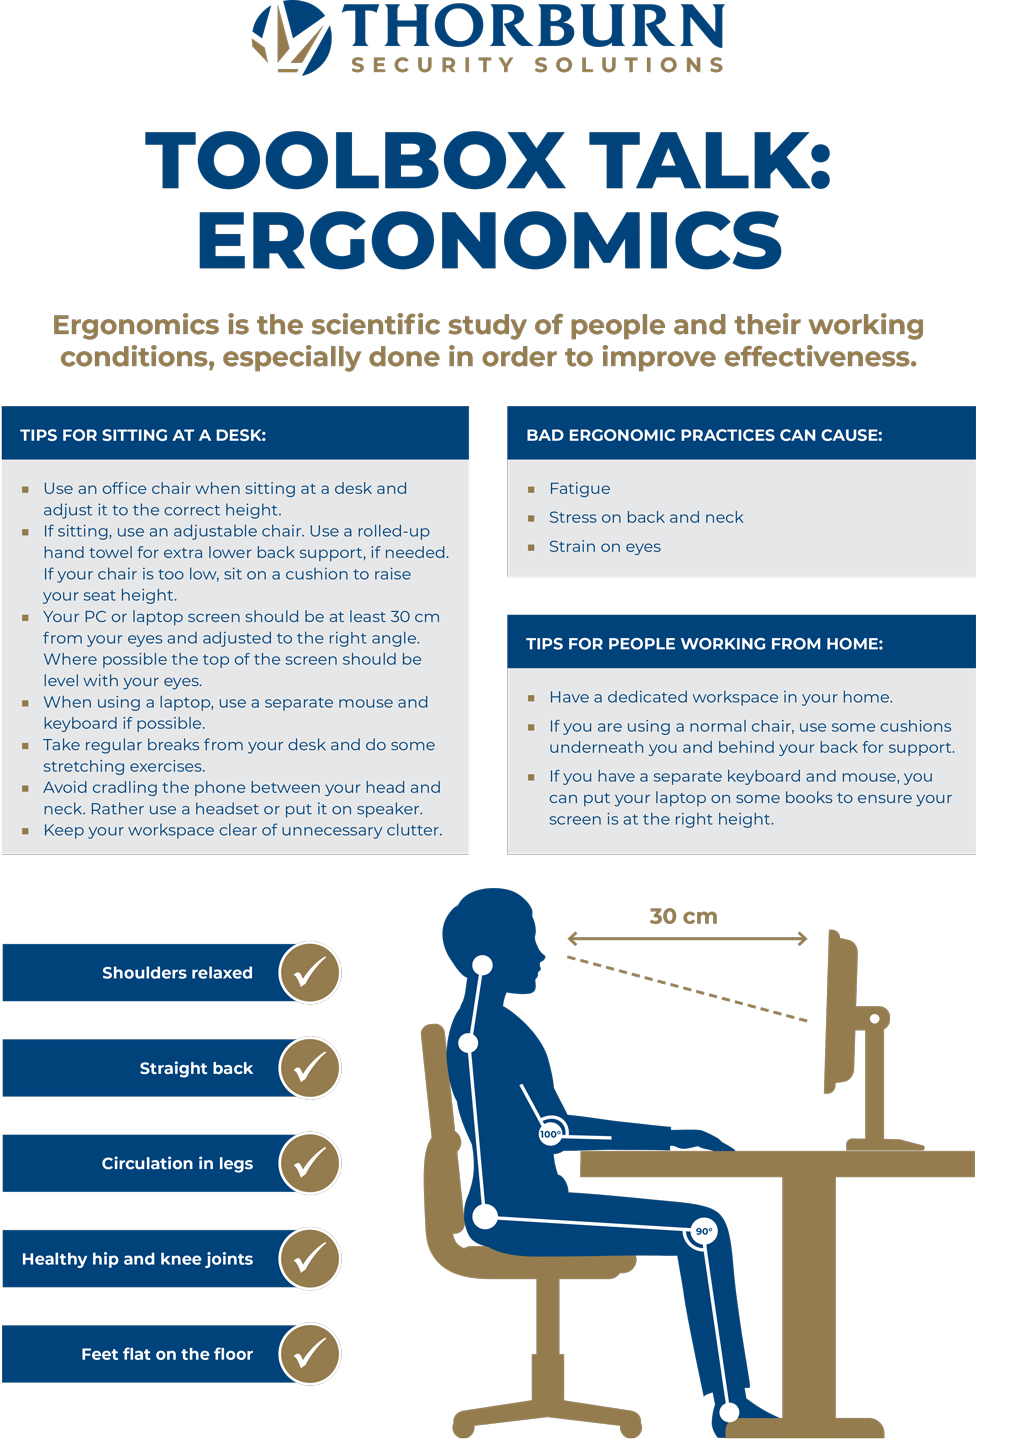 Thorburn Security Services South Africa - Our Values - Toolbox Talk: Ergonomics